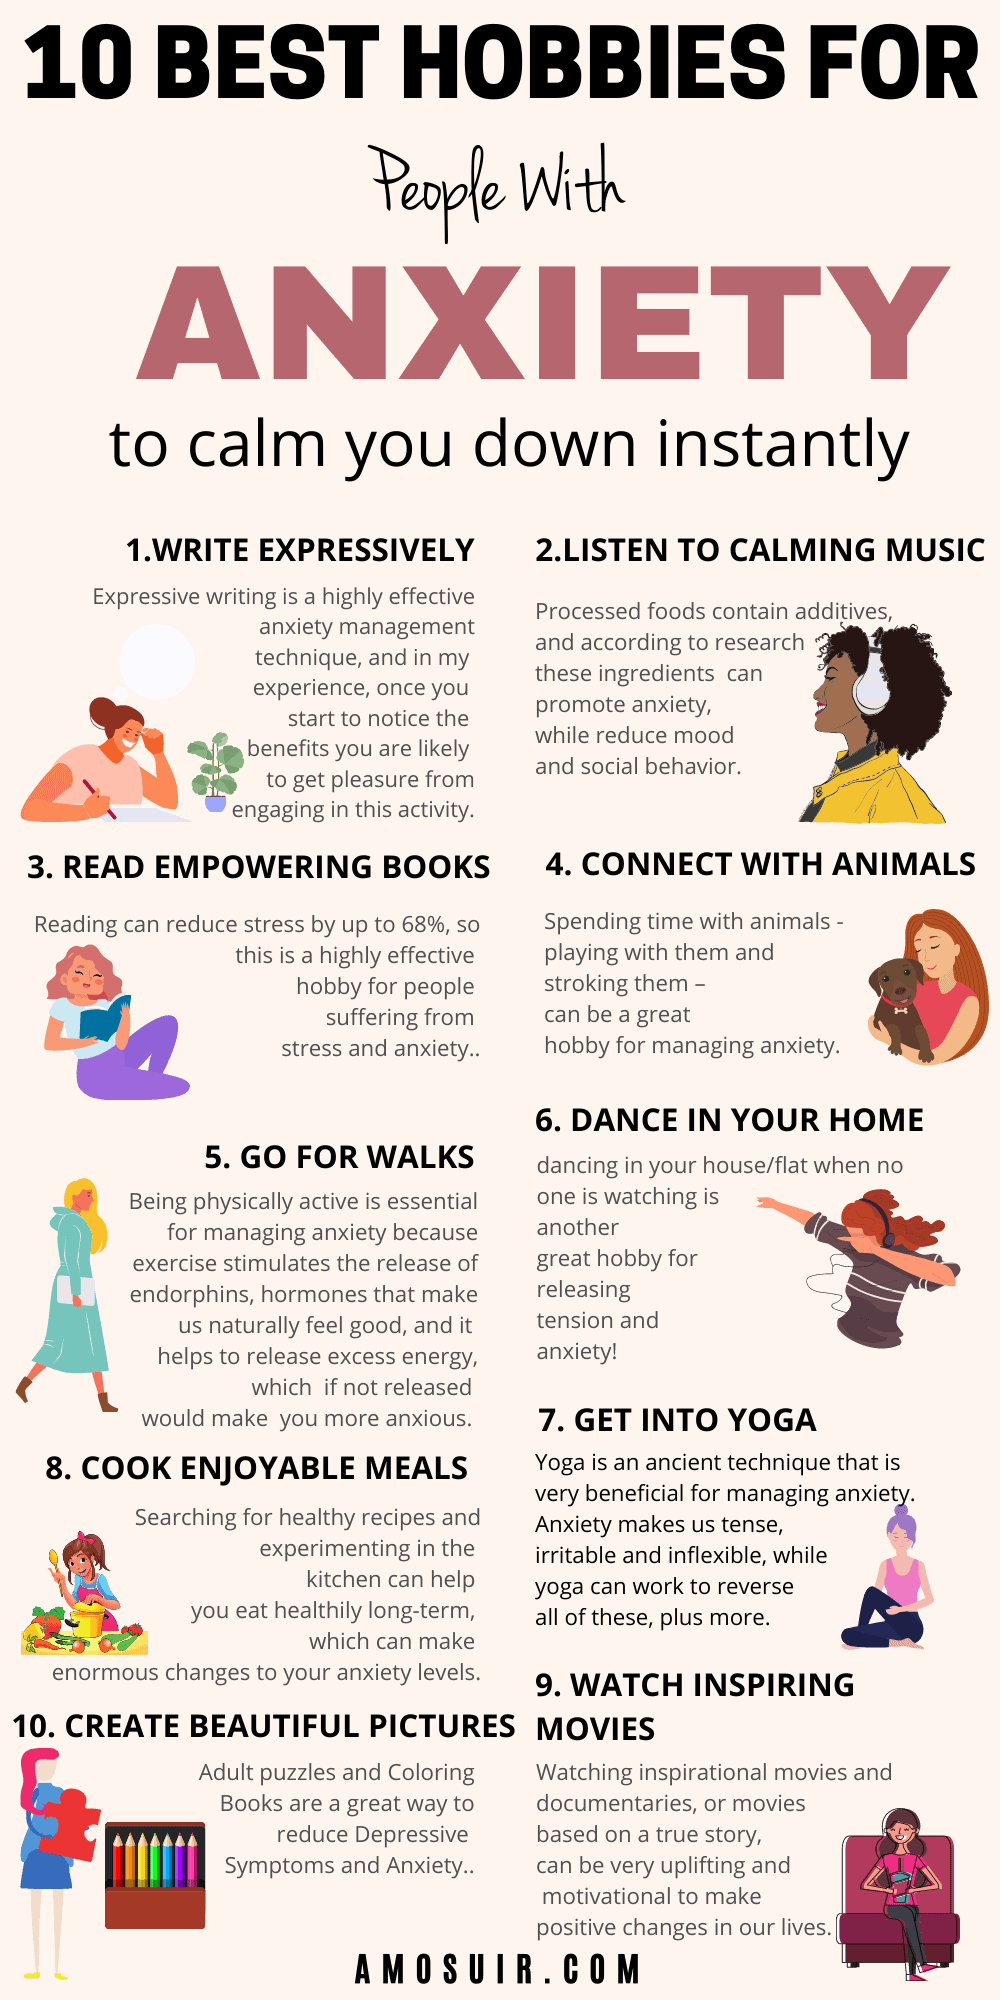 10 BEST HOBBIES FOR PEOPLE WITH ANXIETY INFOGRAPHIC